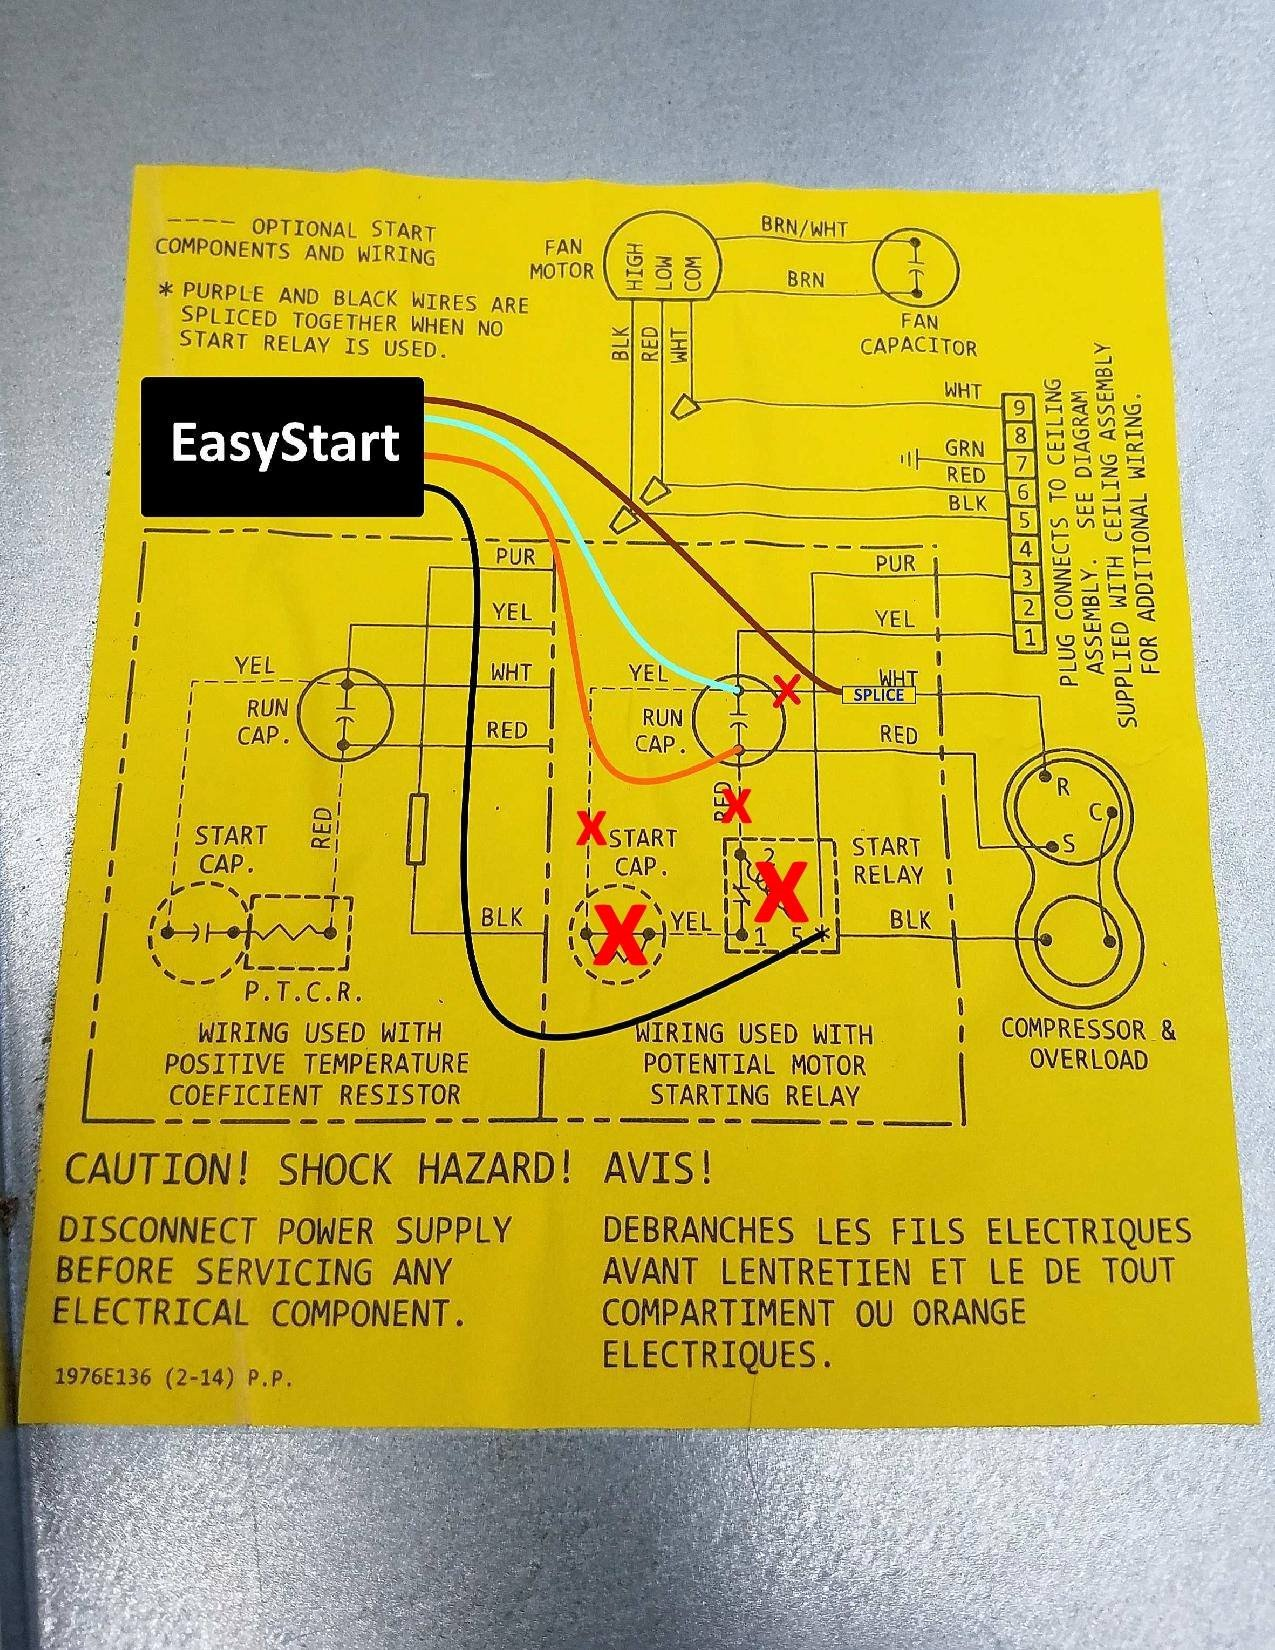 Coleman Wiring Diagram Trusted Online Manufactured Home Furnace Evcon Rv Easystart Soft Starter Diagrams Resource Page Micro Air Mobile